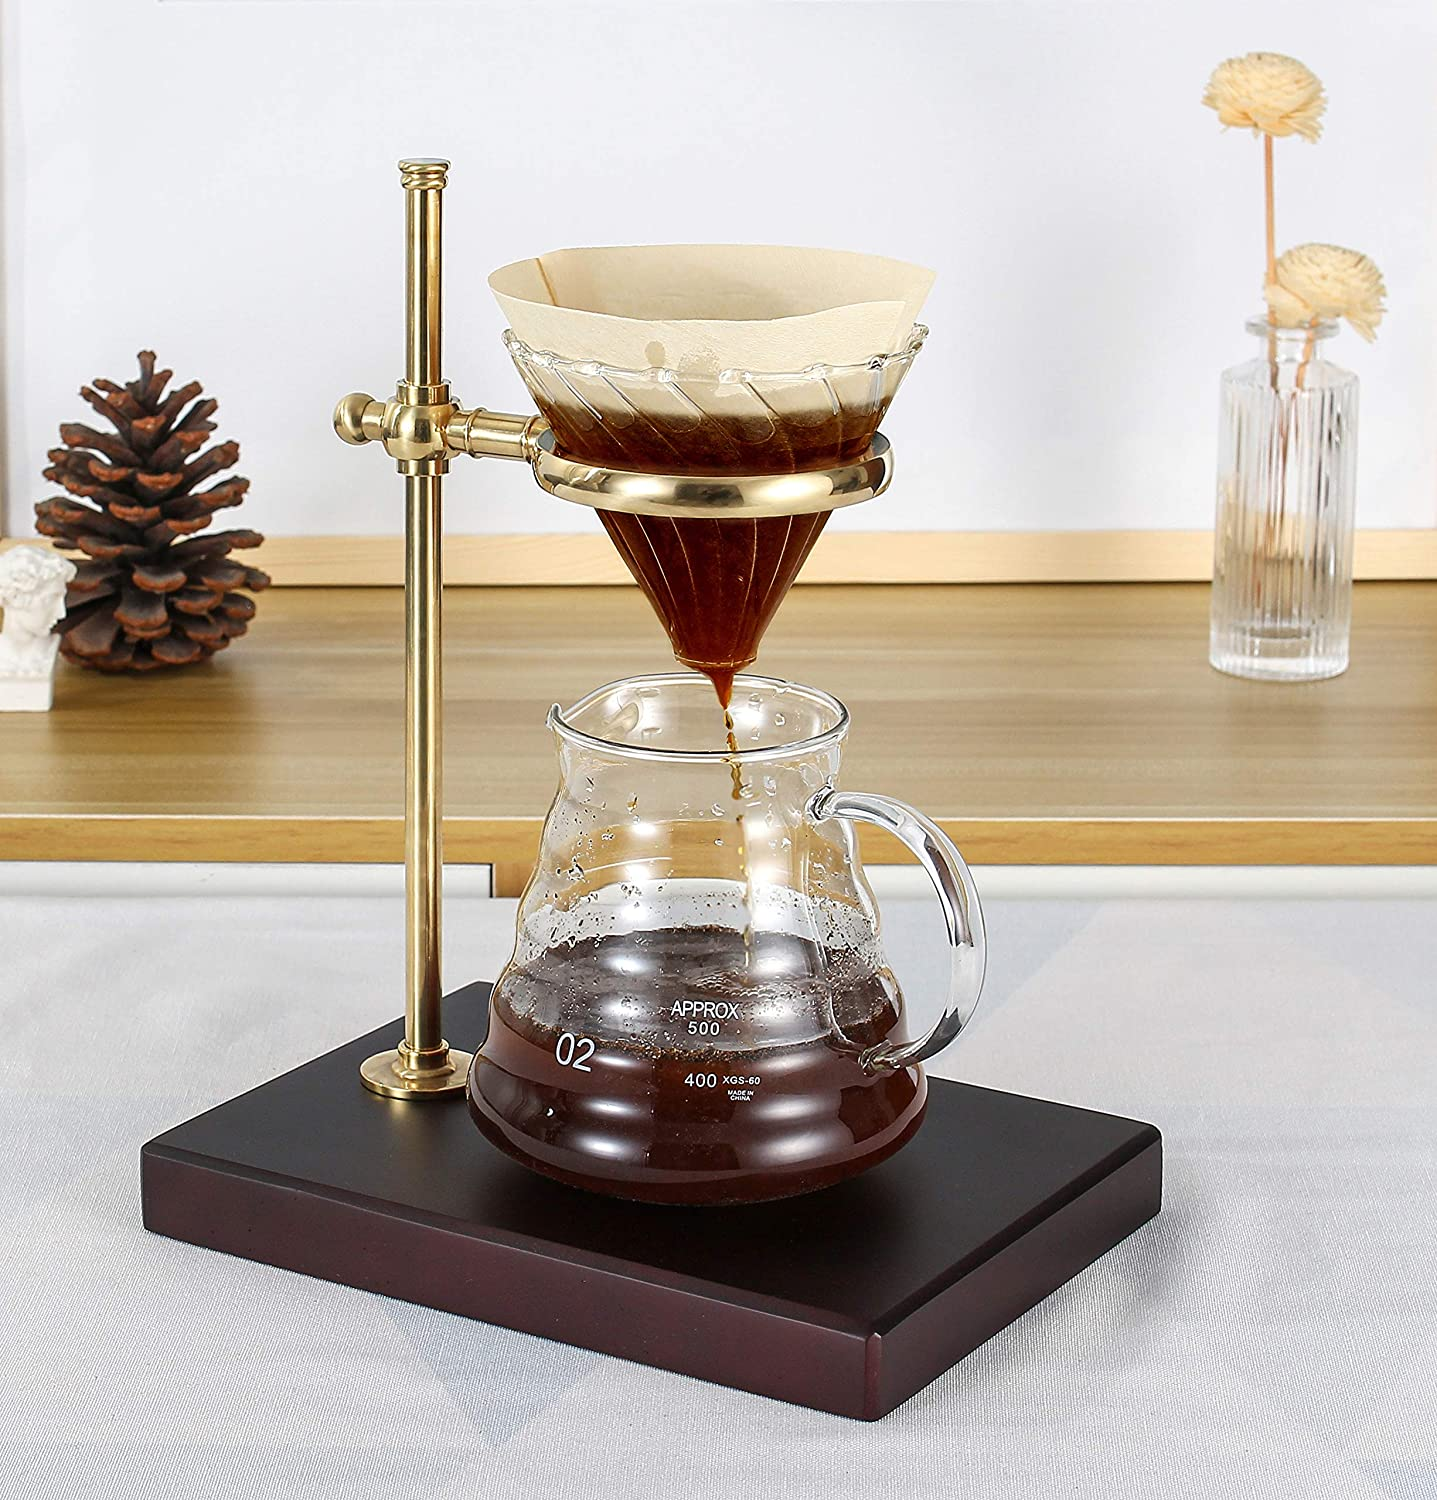 Cafefuji Brass Pour Over Coffee Dripper Produces Flavorful Cups of Cafe Quality Coffee with Wood Base Stand Wonderful Presents for Coffee Connoisseurs Coffee Lovers for Best Coffee Experience